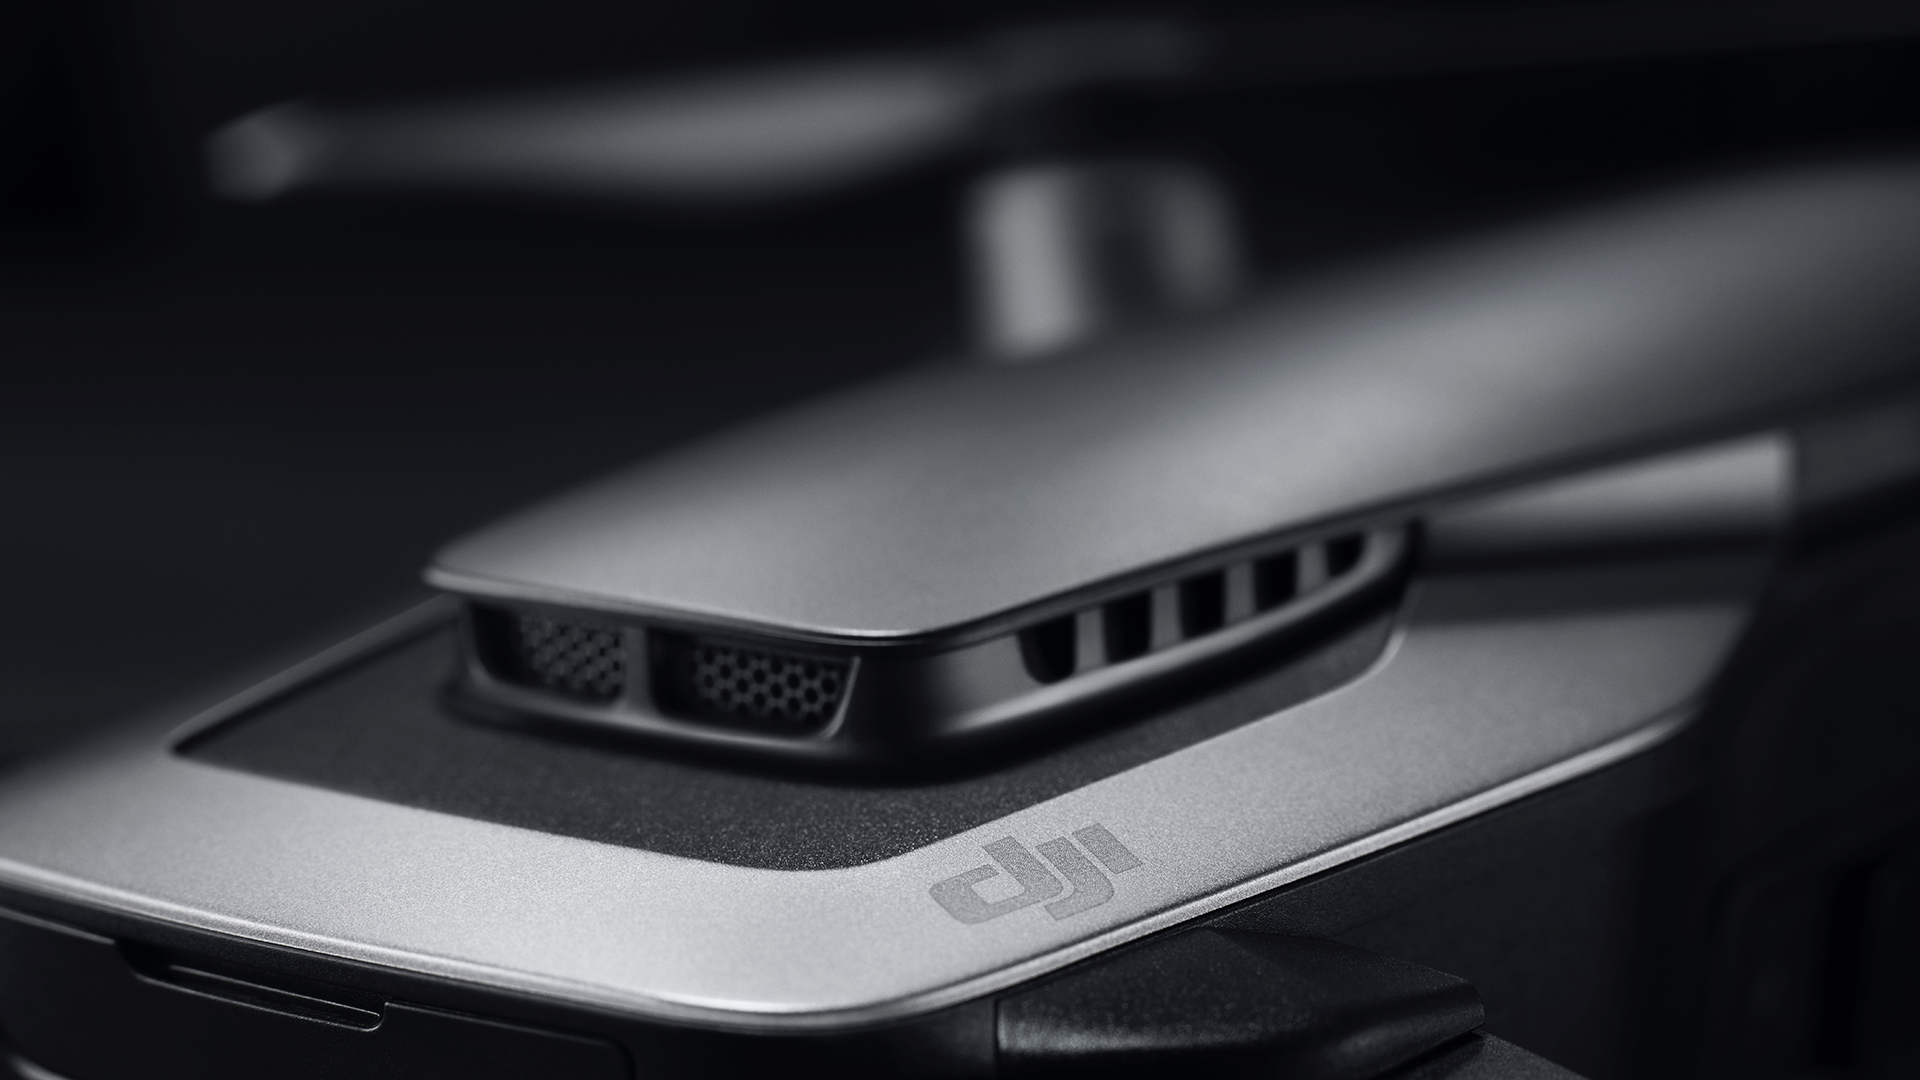 Designing the DJI Mavic Air, the foldable 4K Drone